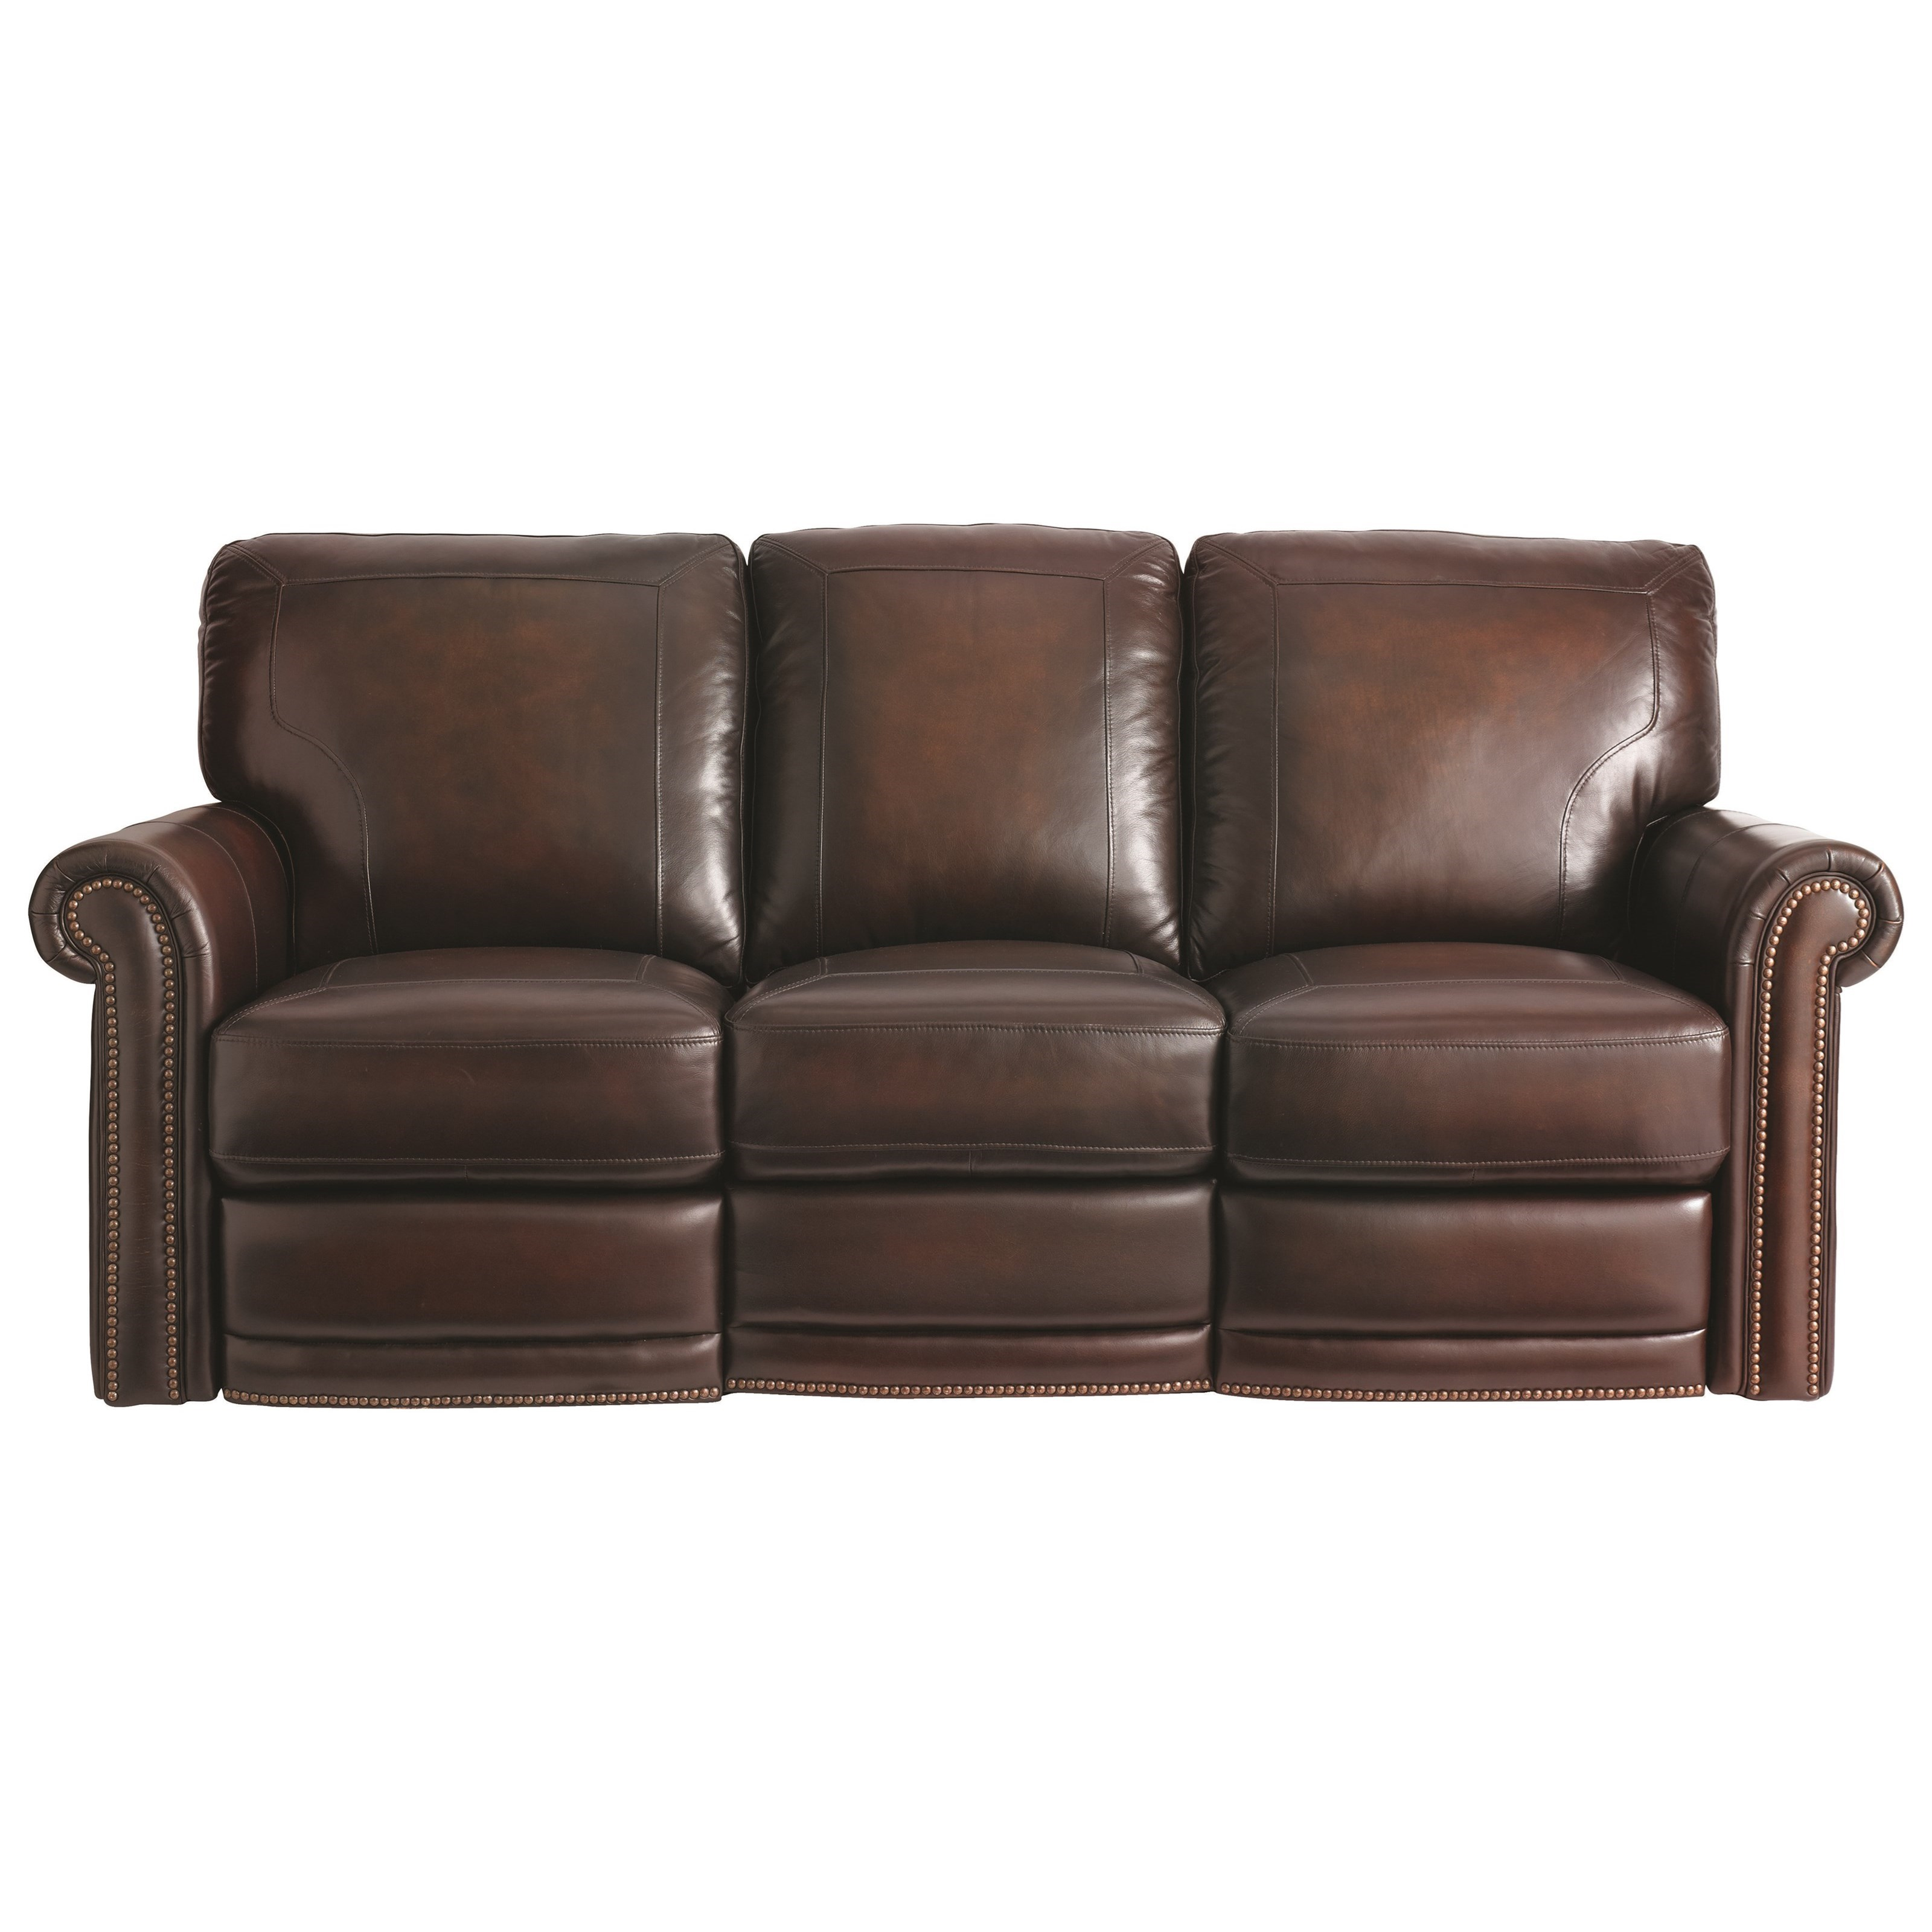 Bassett Hamilton 3958 Power Reclining Sofa - Item Number 3958-P62MS  sc 1 st  Great American Home Store : power reclining furniture - islam-shia.org